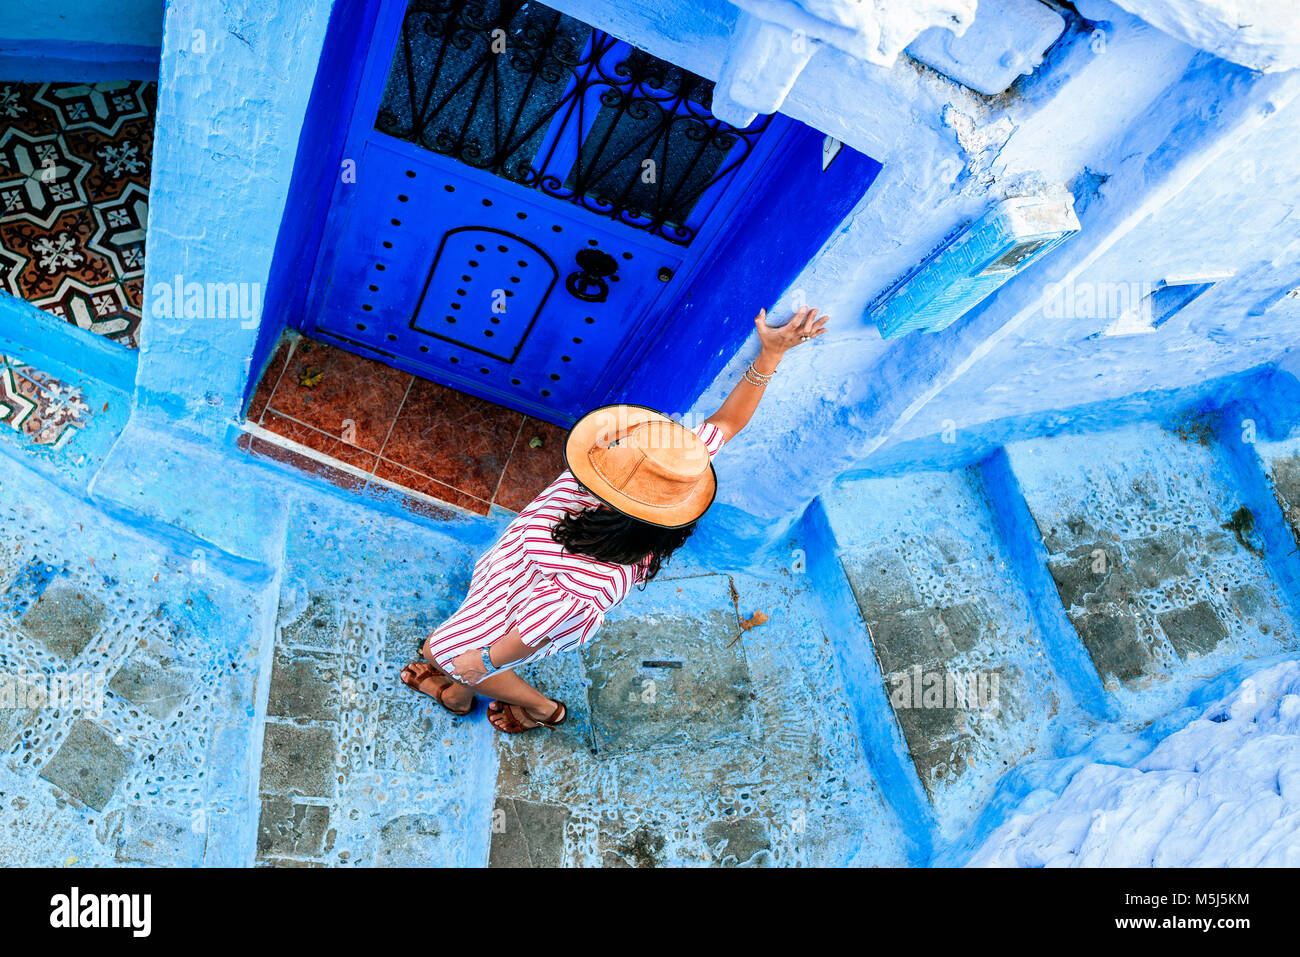 Morocco, Chefchaouen, woman walking alley downwards, top view - Stock Image